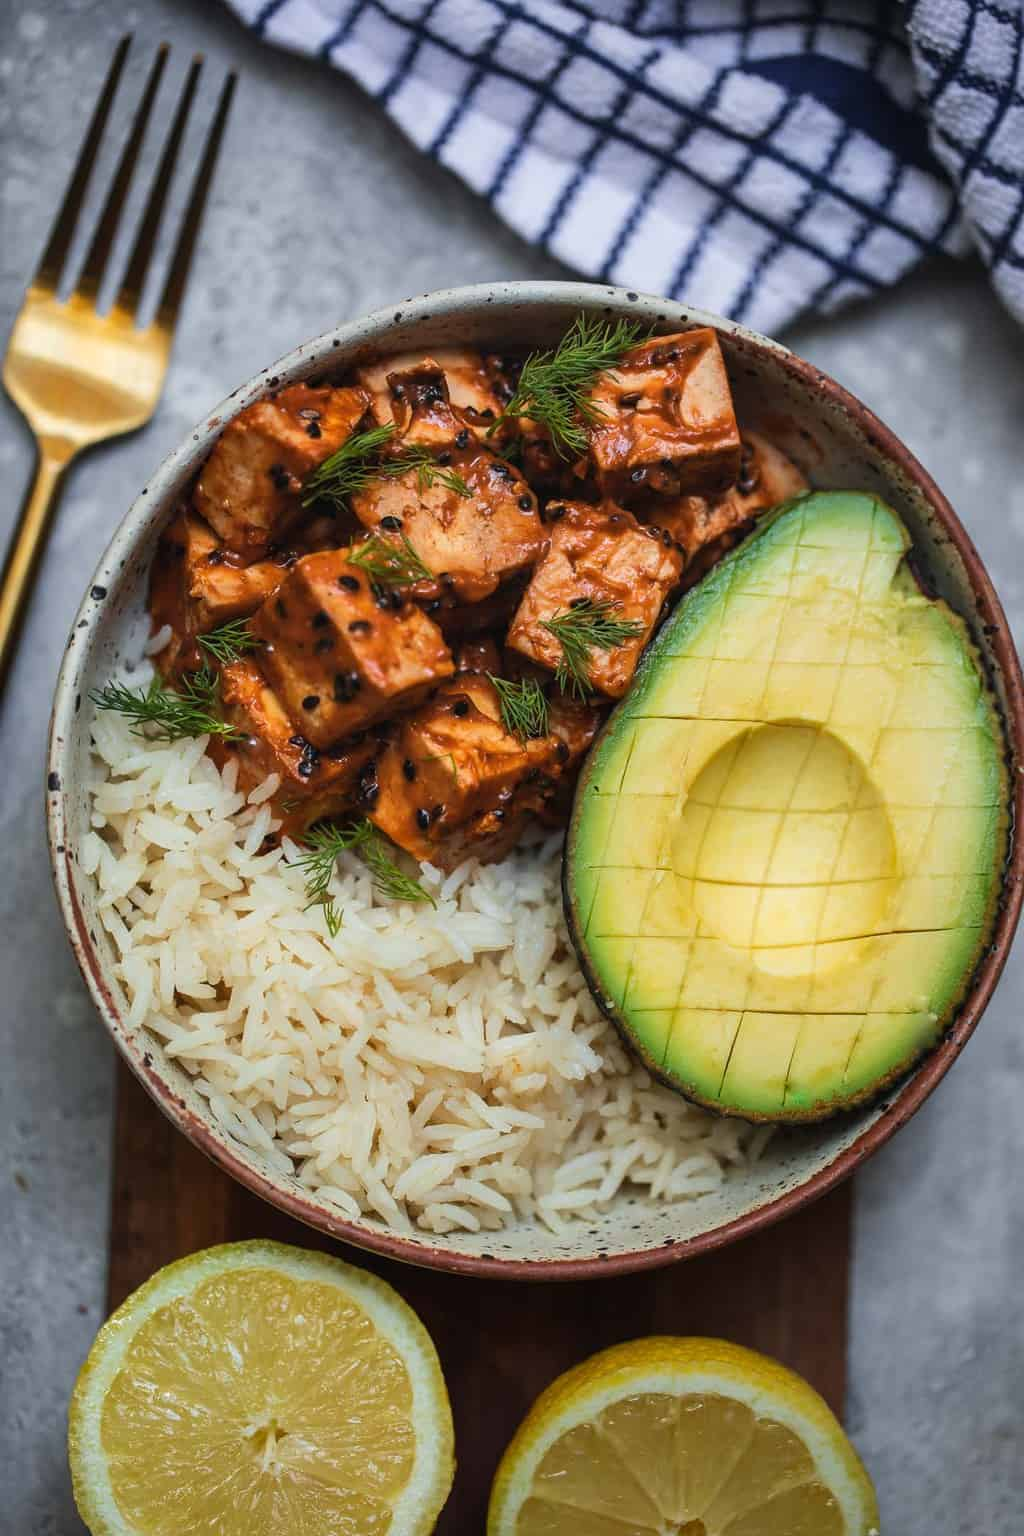 Sesame peanut tofu over a bed of rice with avocado